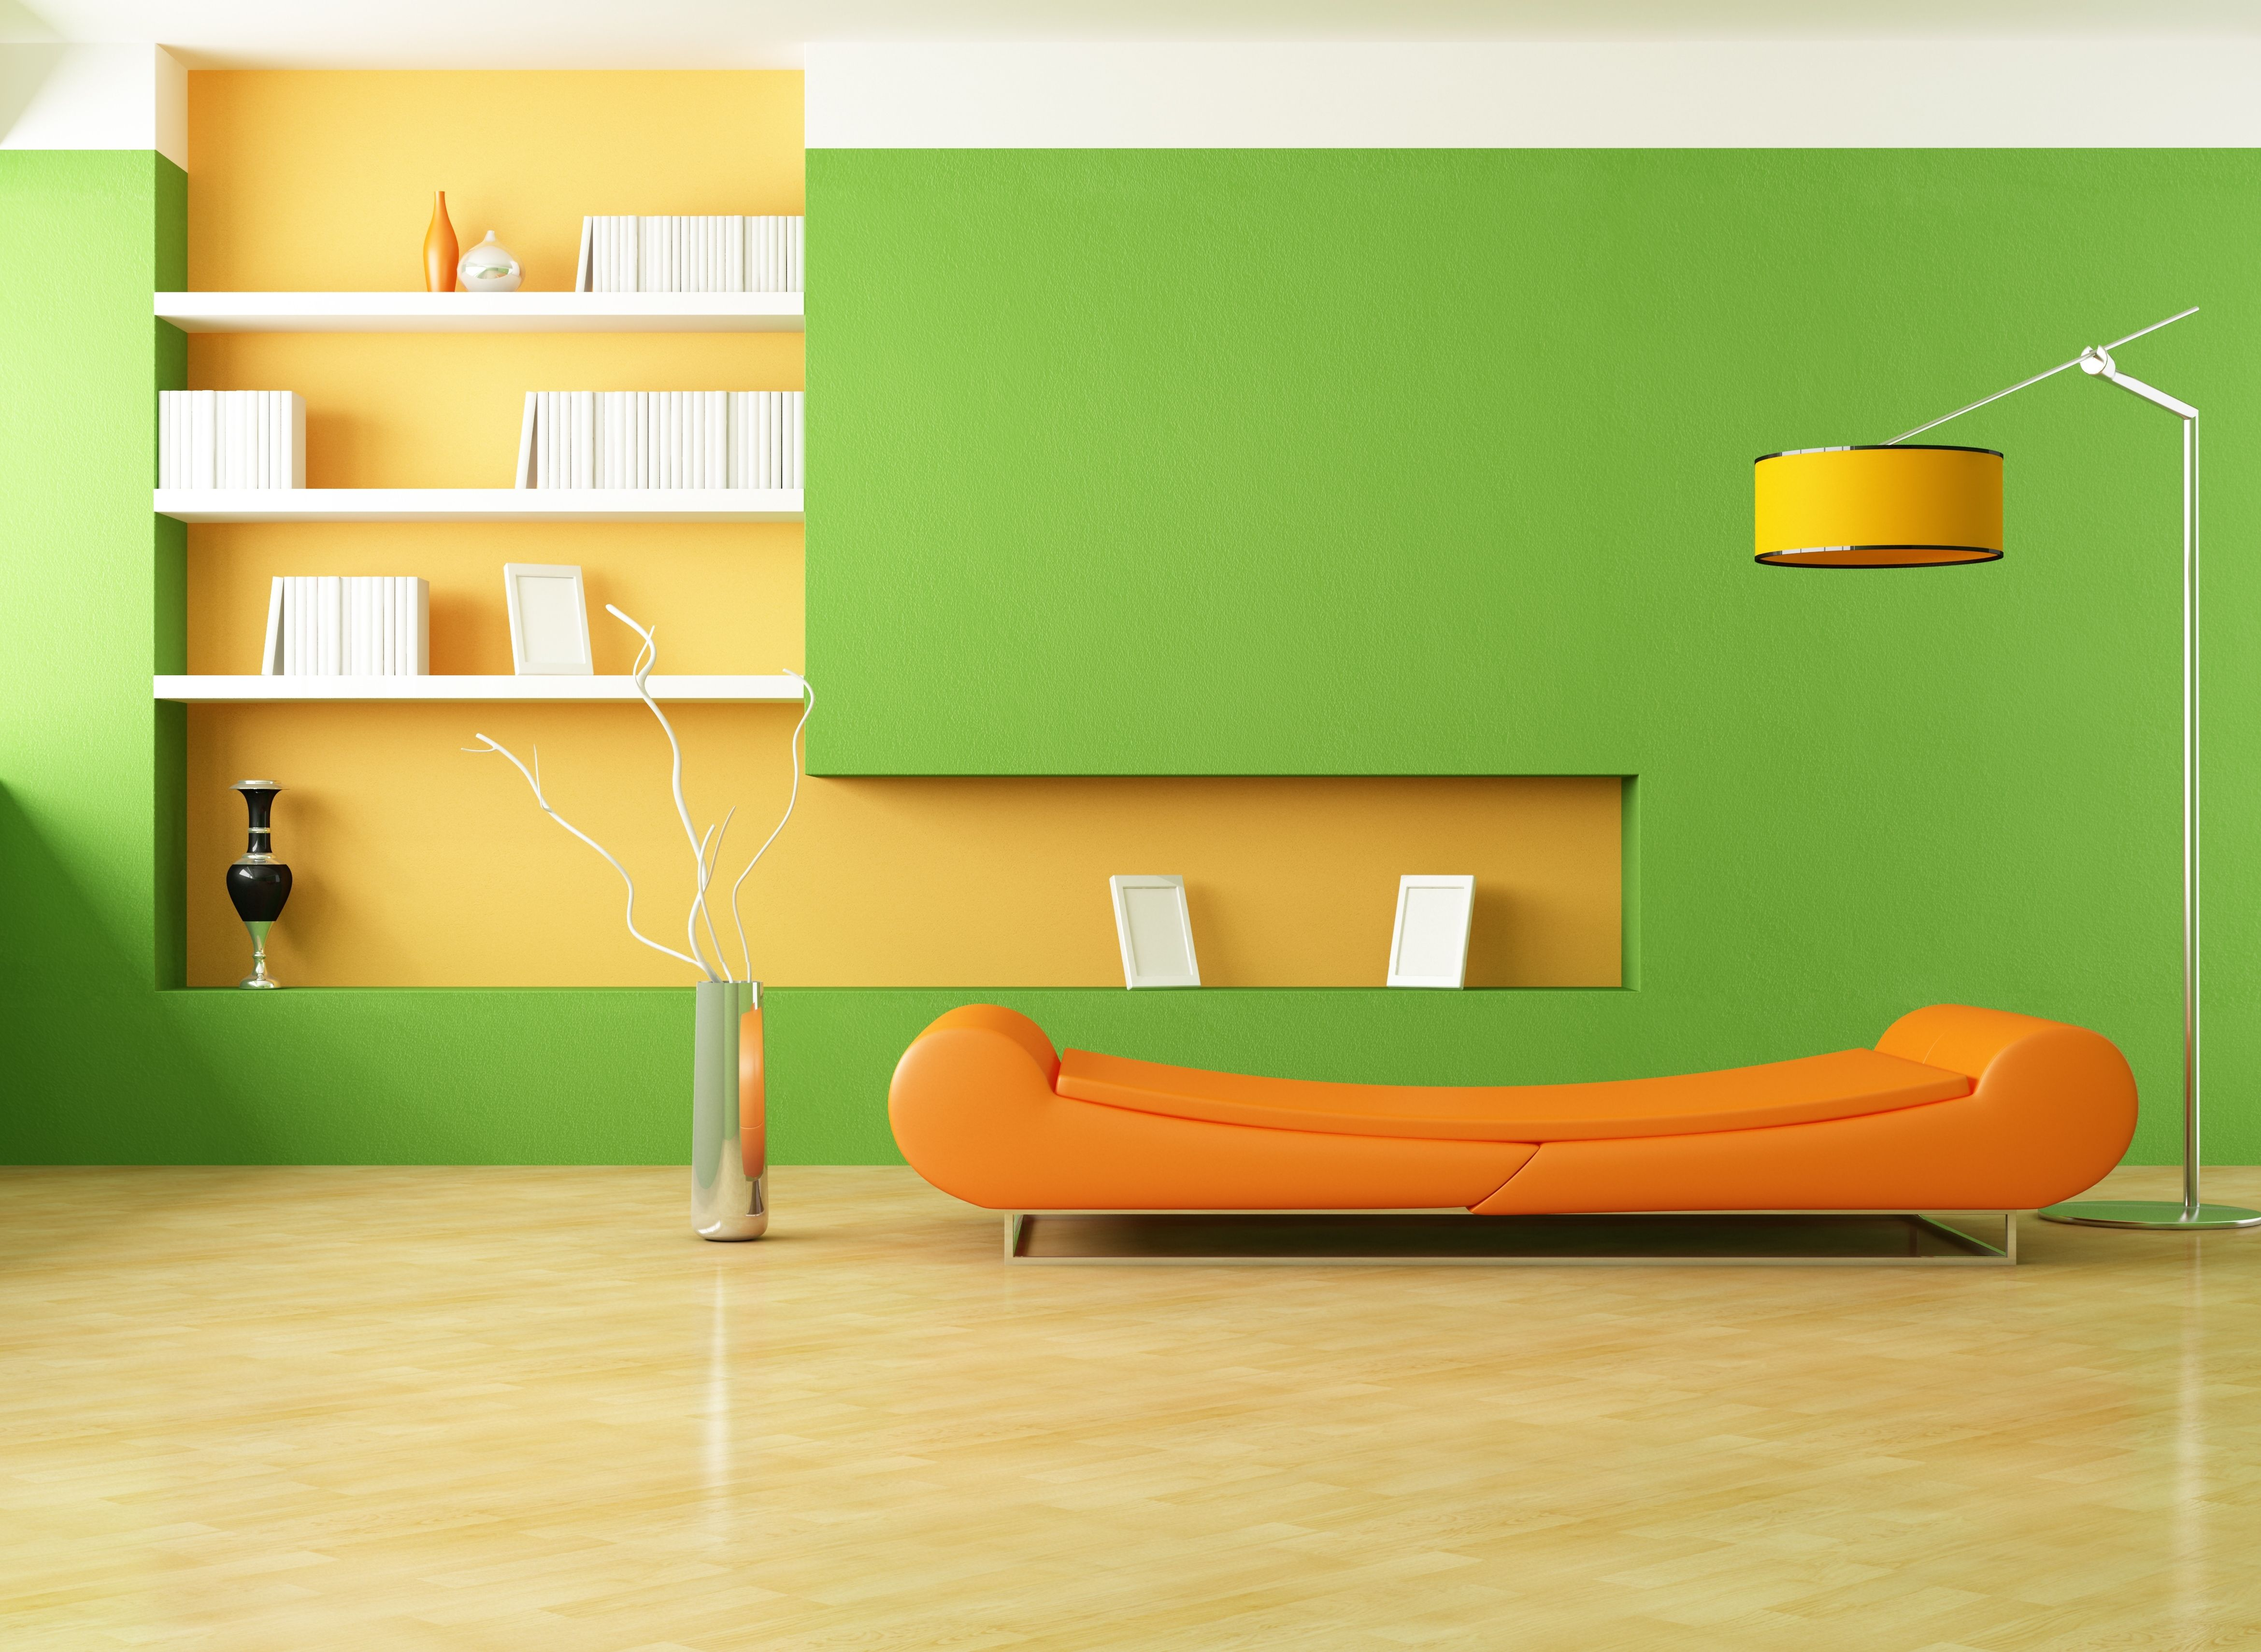 House Design,Inspire Home Interior Design With Green Wall Paint On Combine  Orange Painted For Hanging Shelf And Comfortable Orange Leather Sleeping  Chair ...